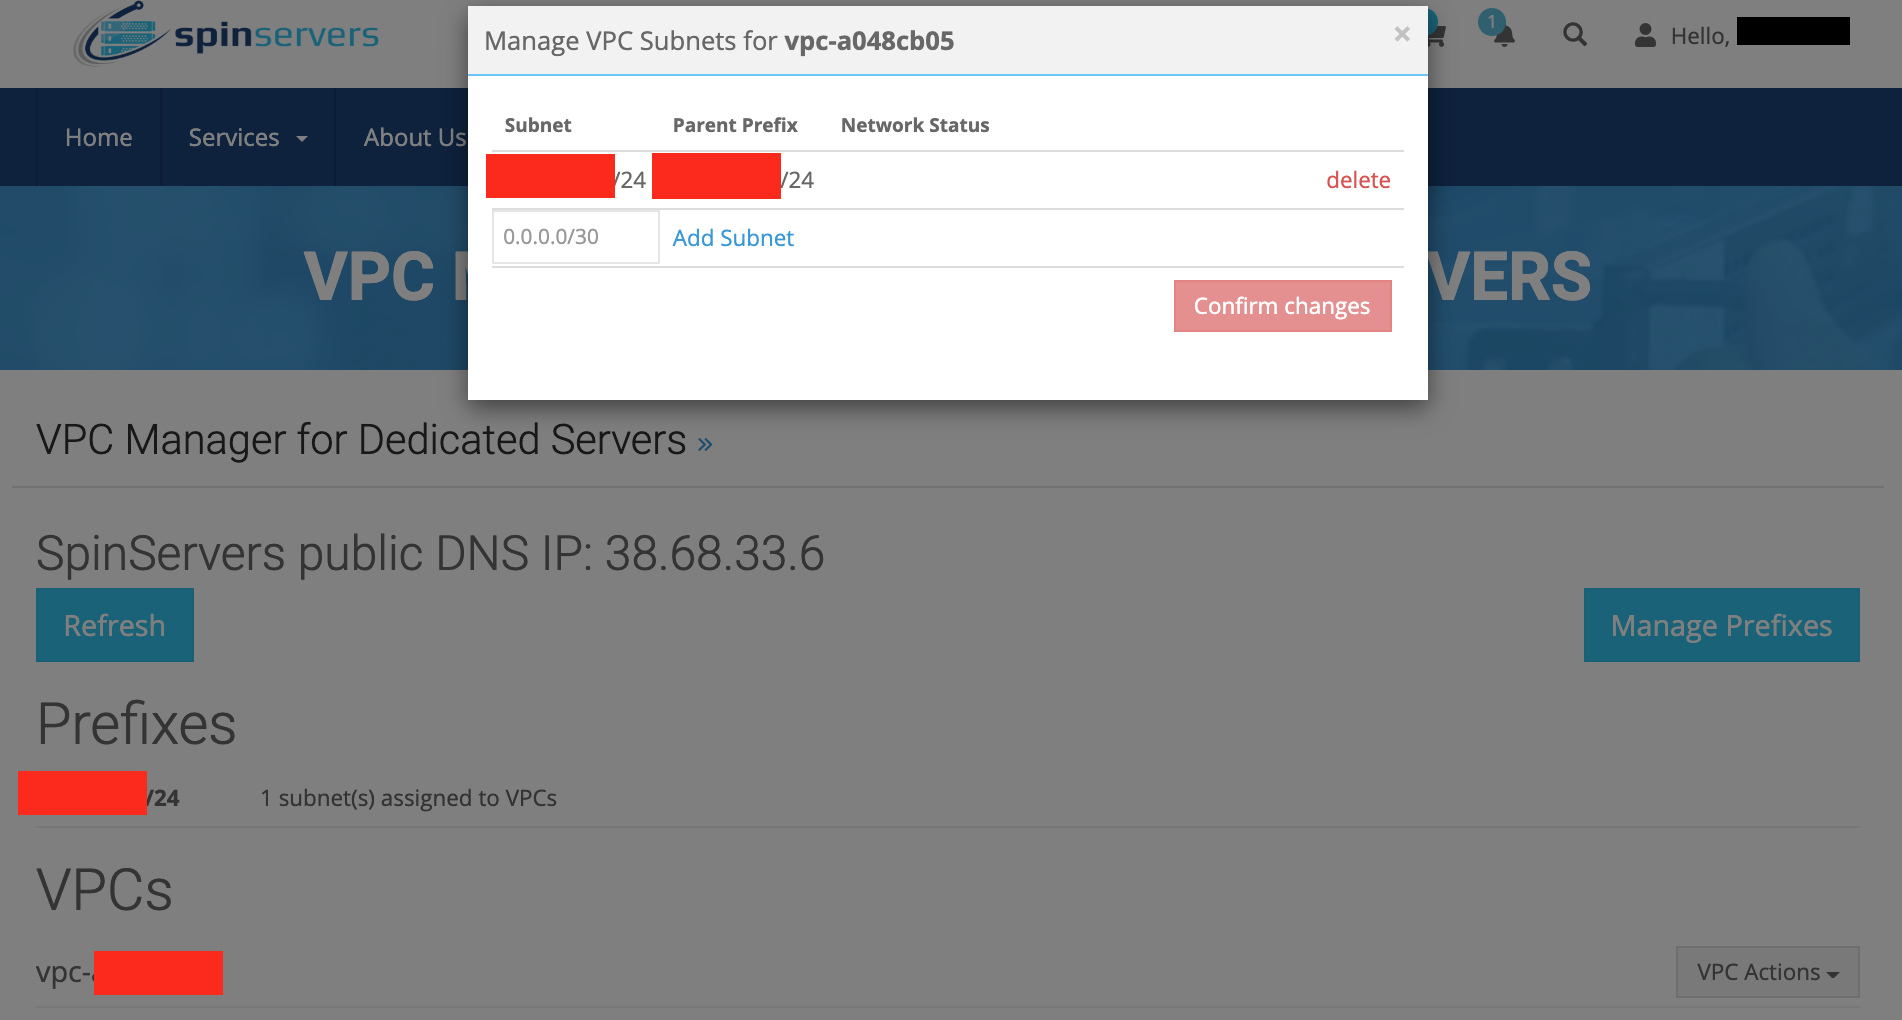 Manage VPC Subnets